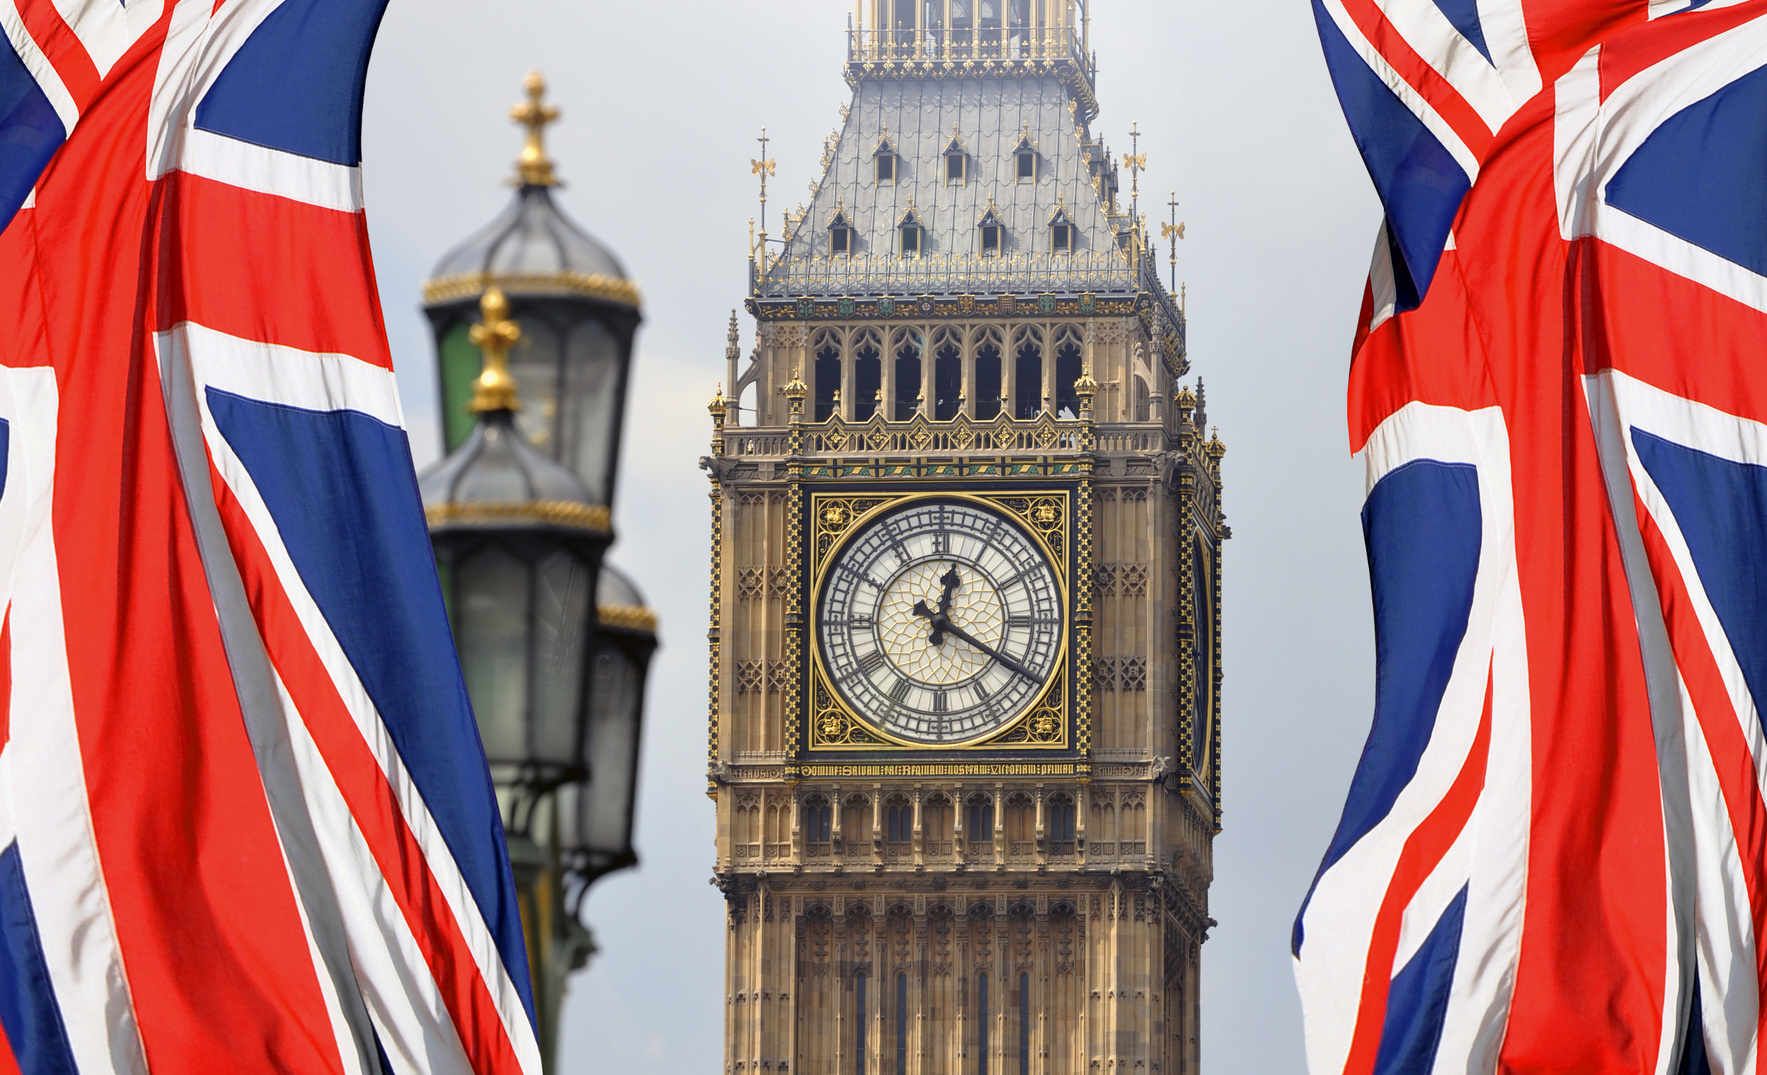 Big Ben in London and English flag